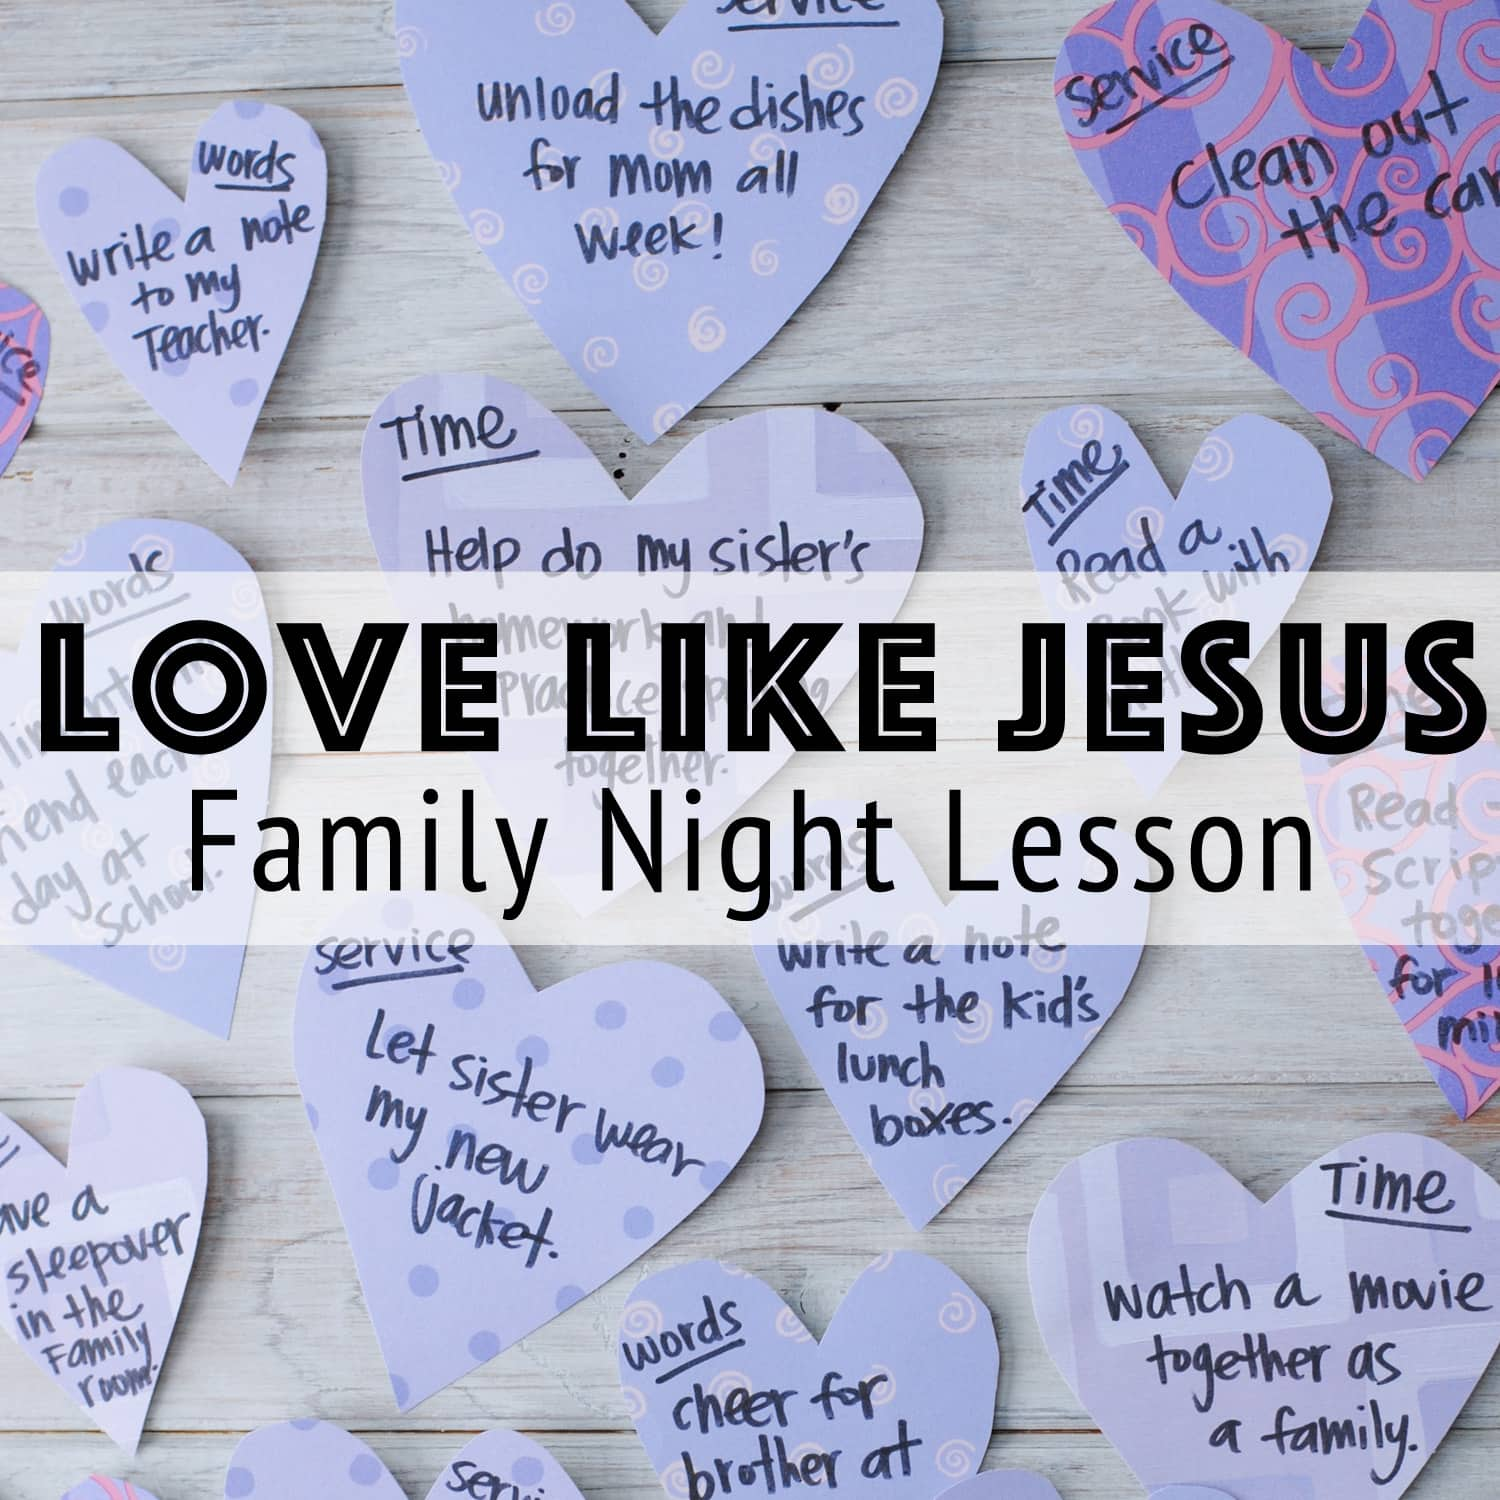 Love Like Jesus: The Mother Lode Of Ideas